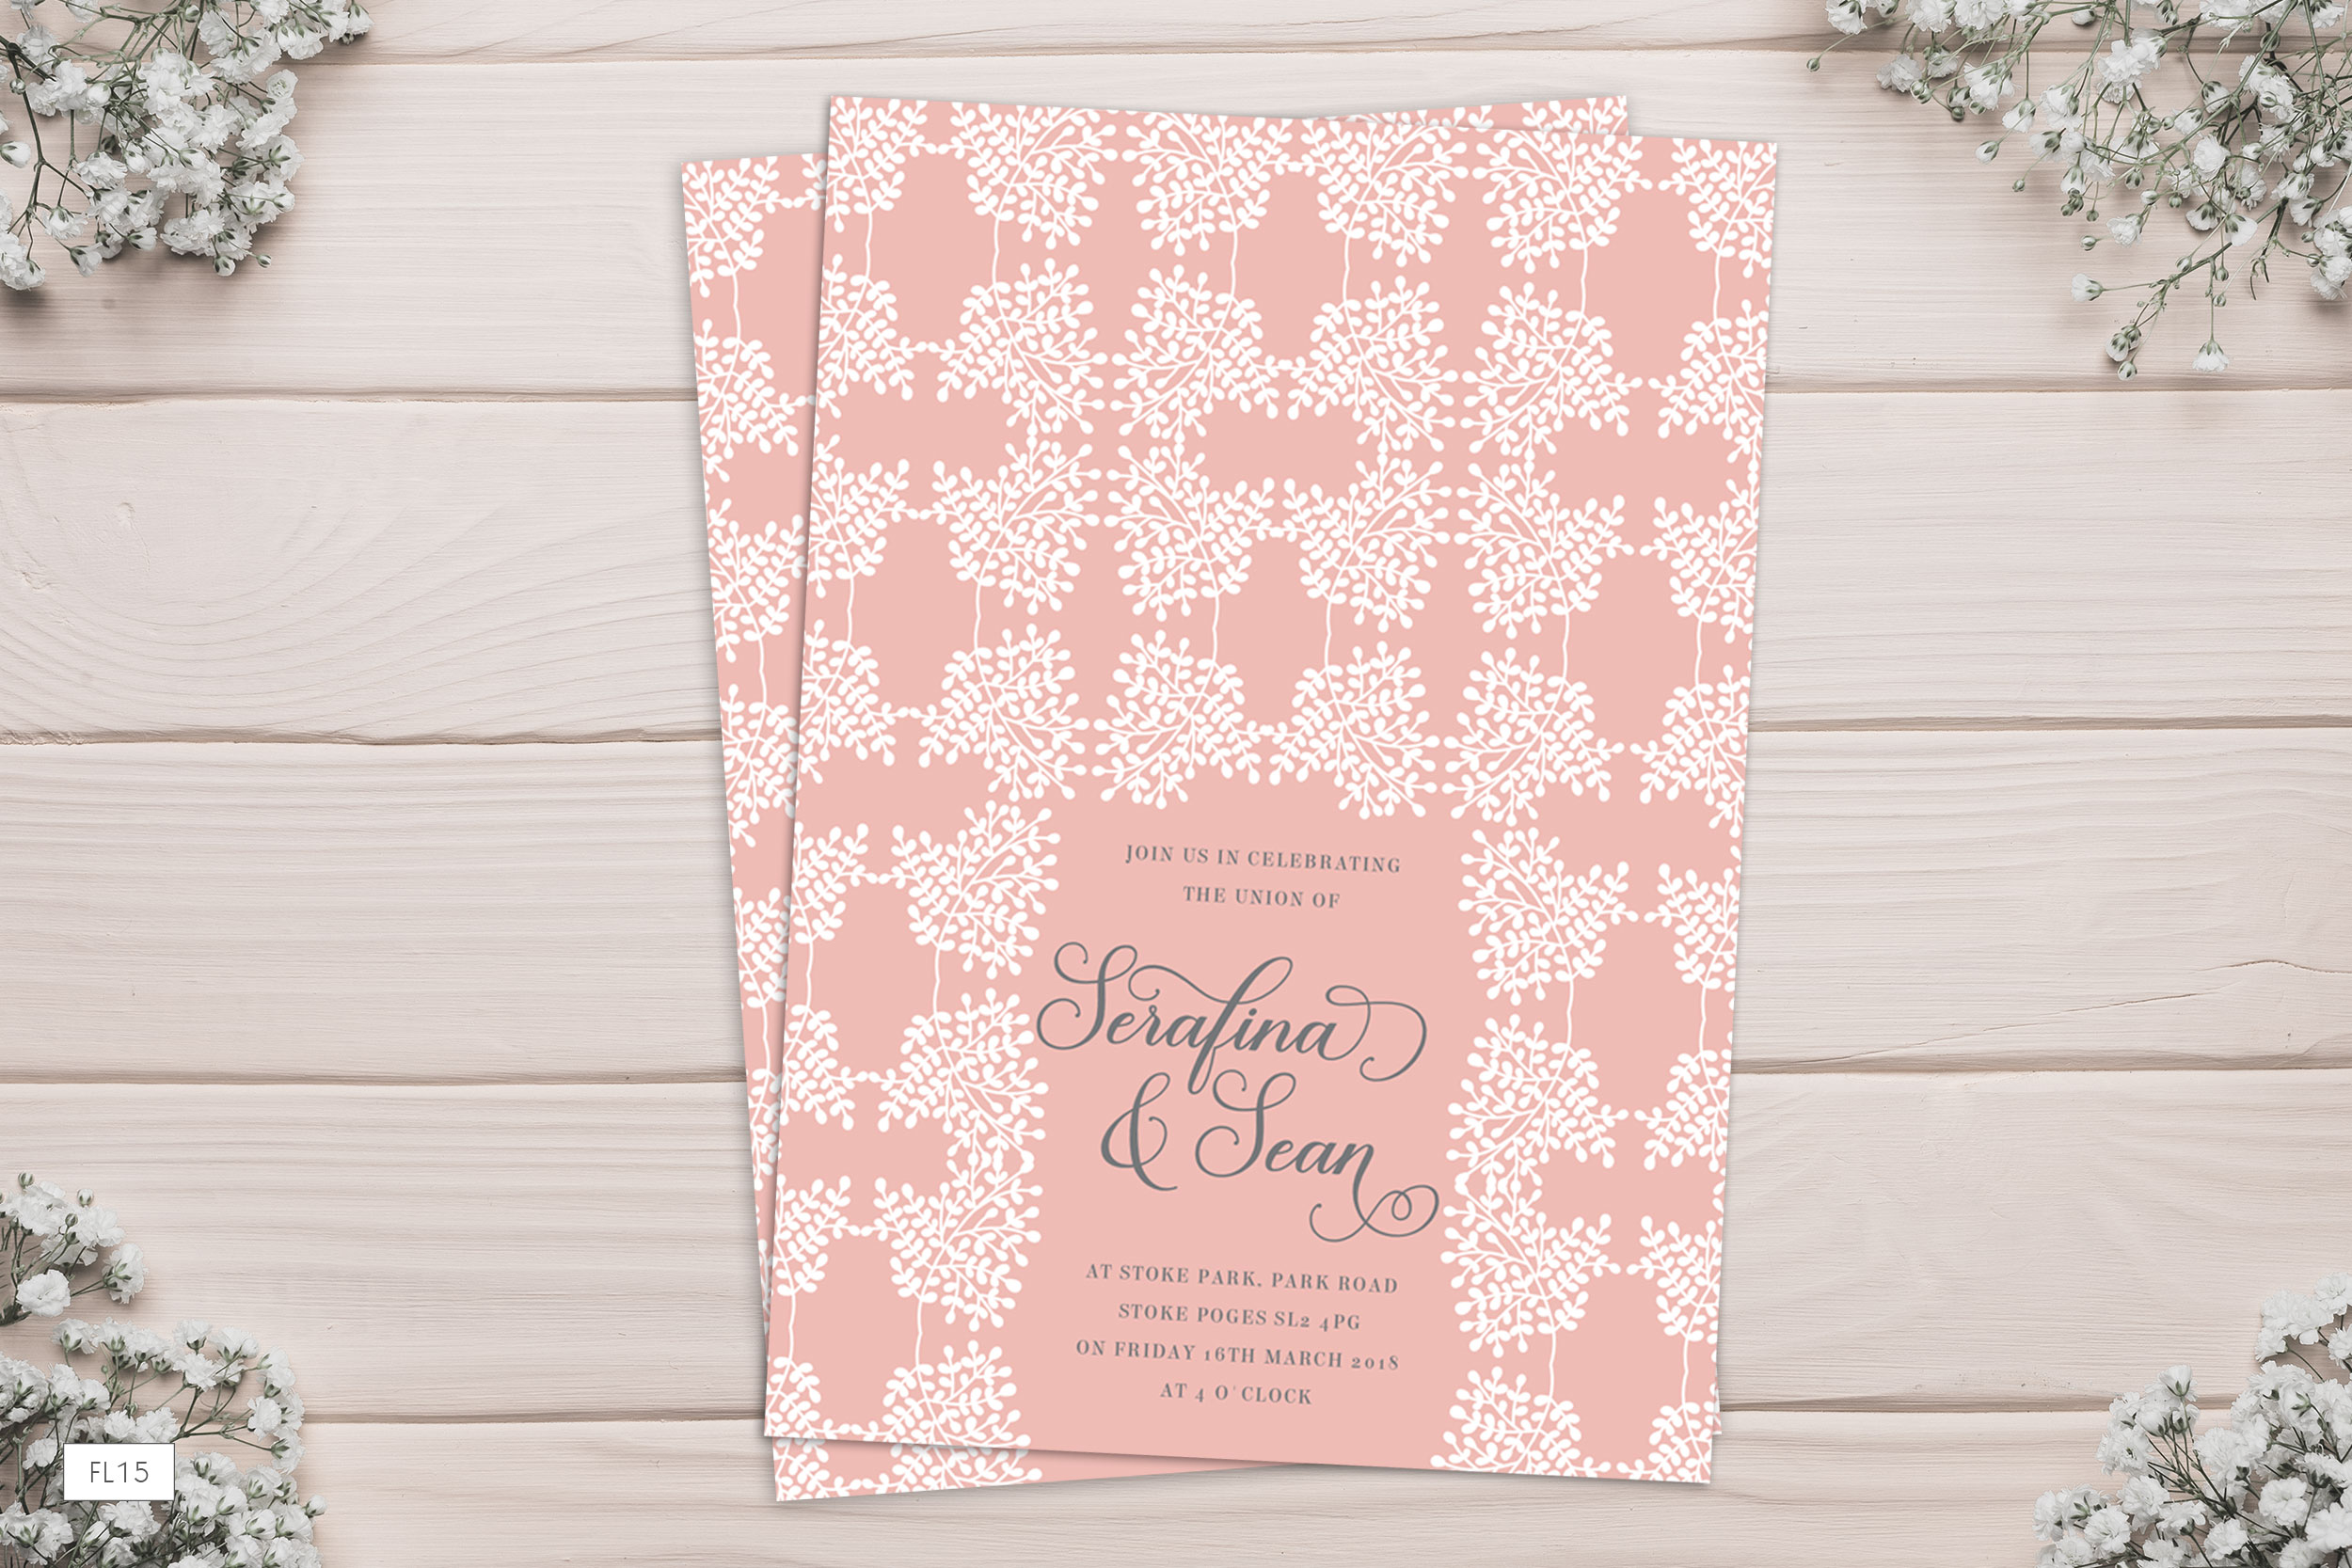 meadow-blush-wedding-invitation.jpg